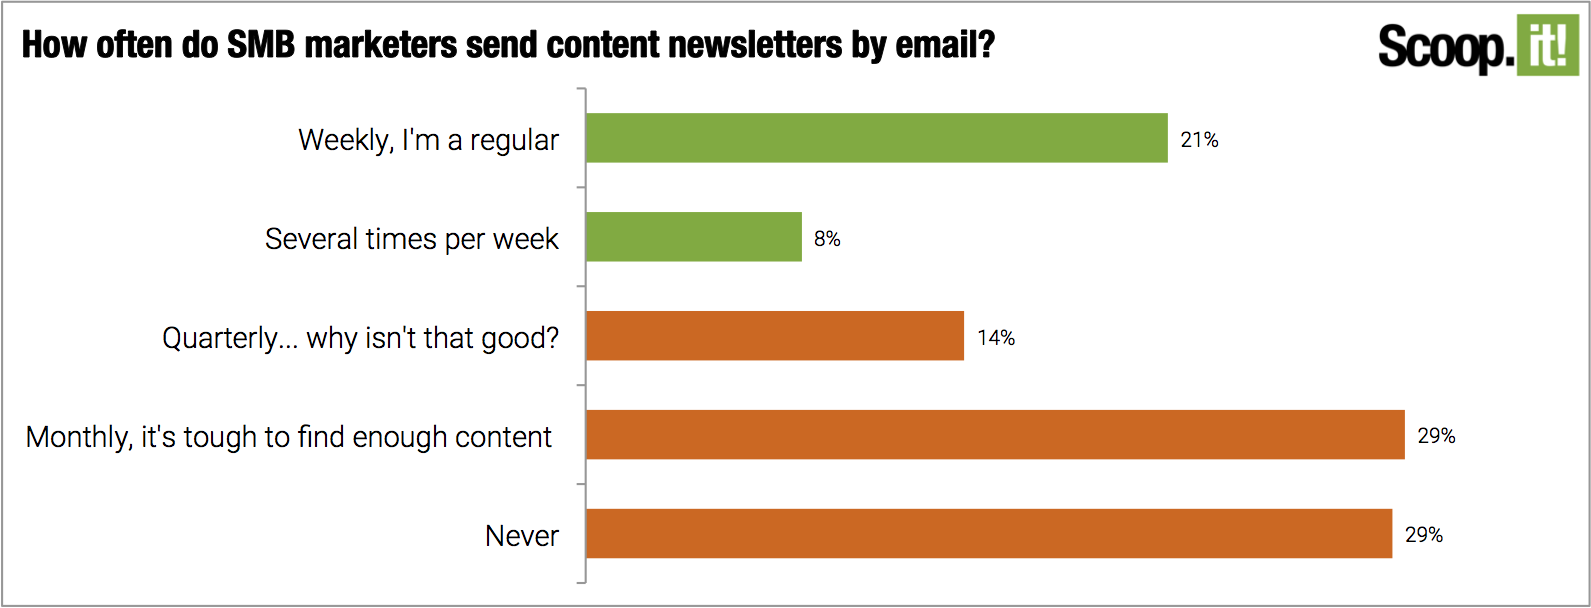 How often do SMB marketers send content newsletters by email